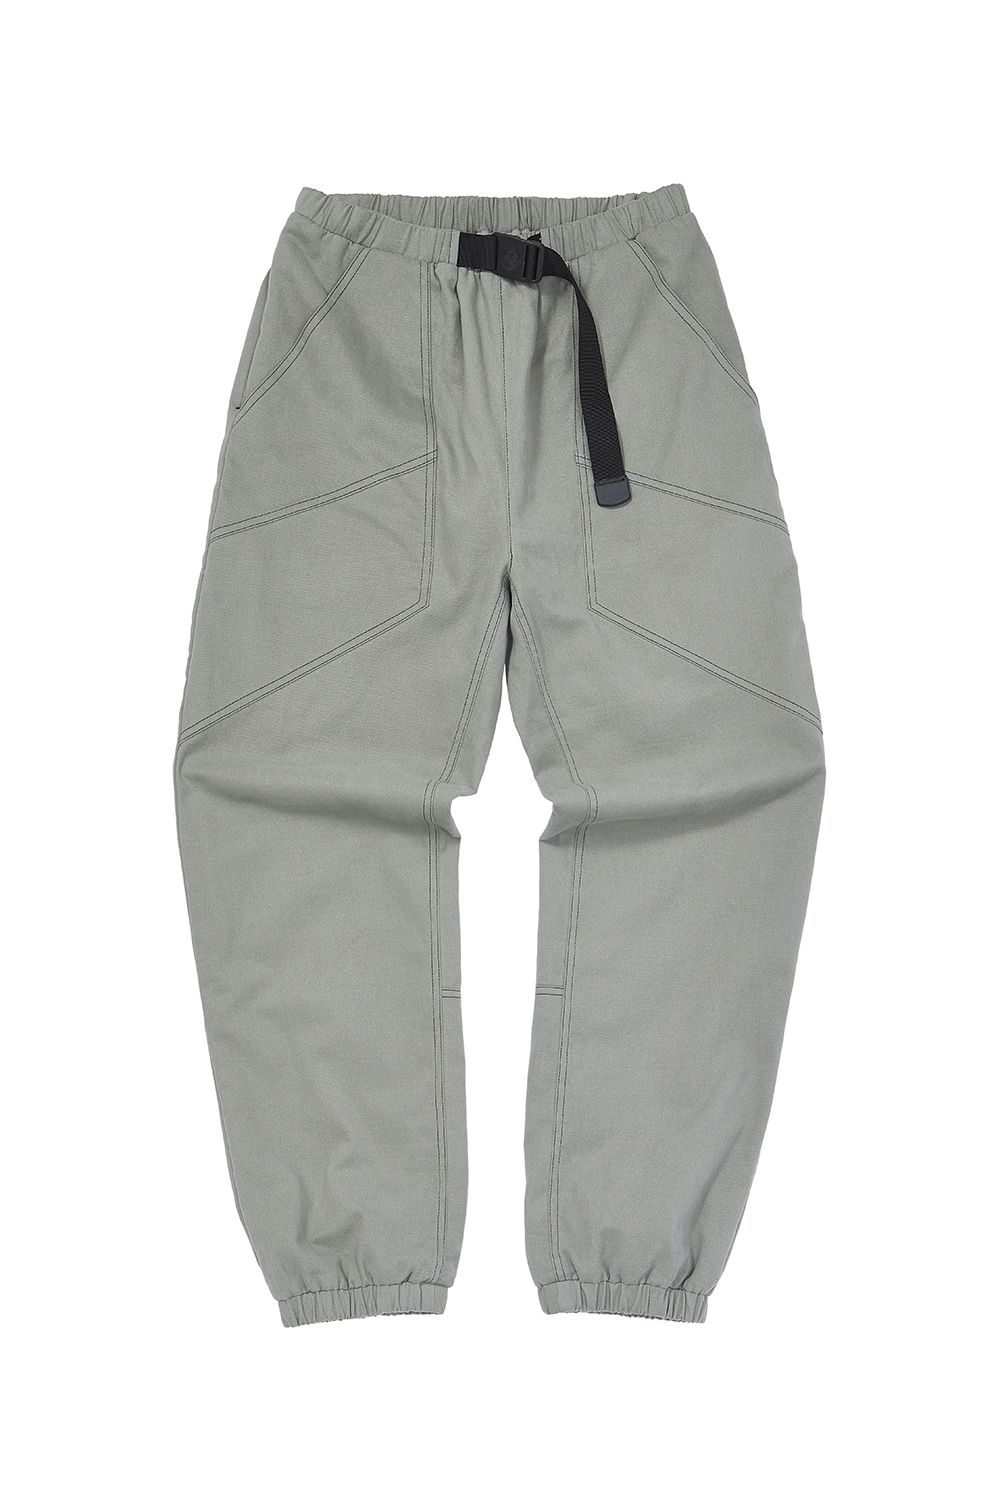 BELTED JOGGER_mint gray